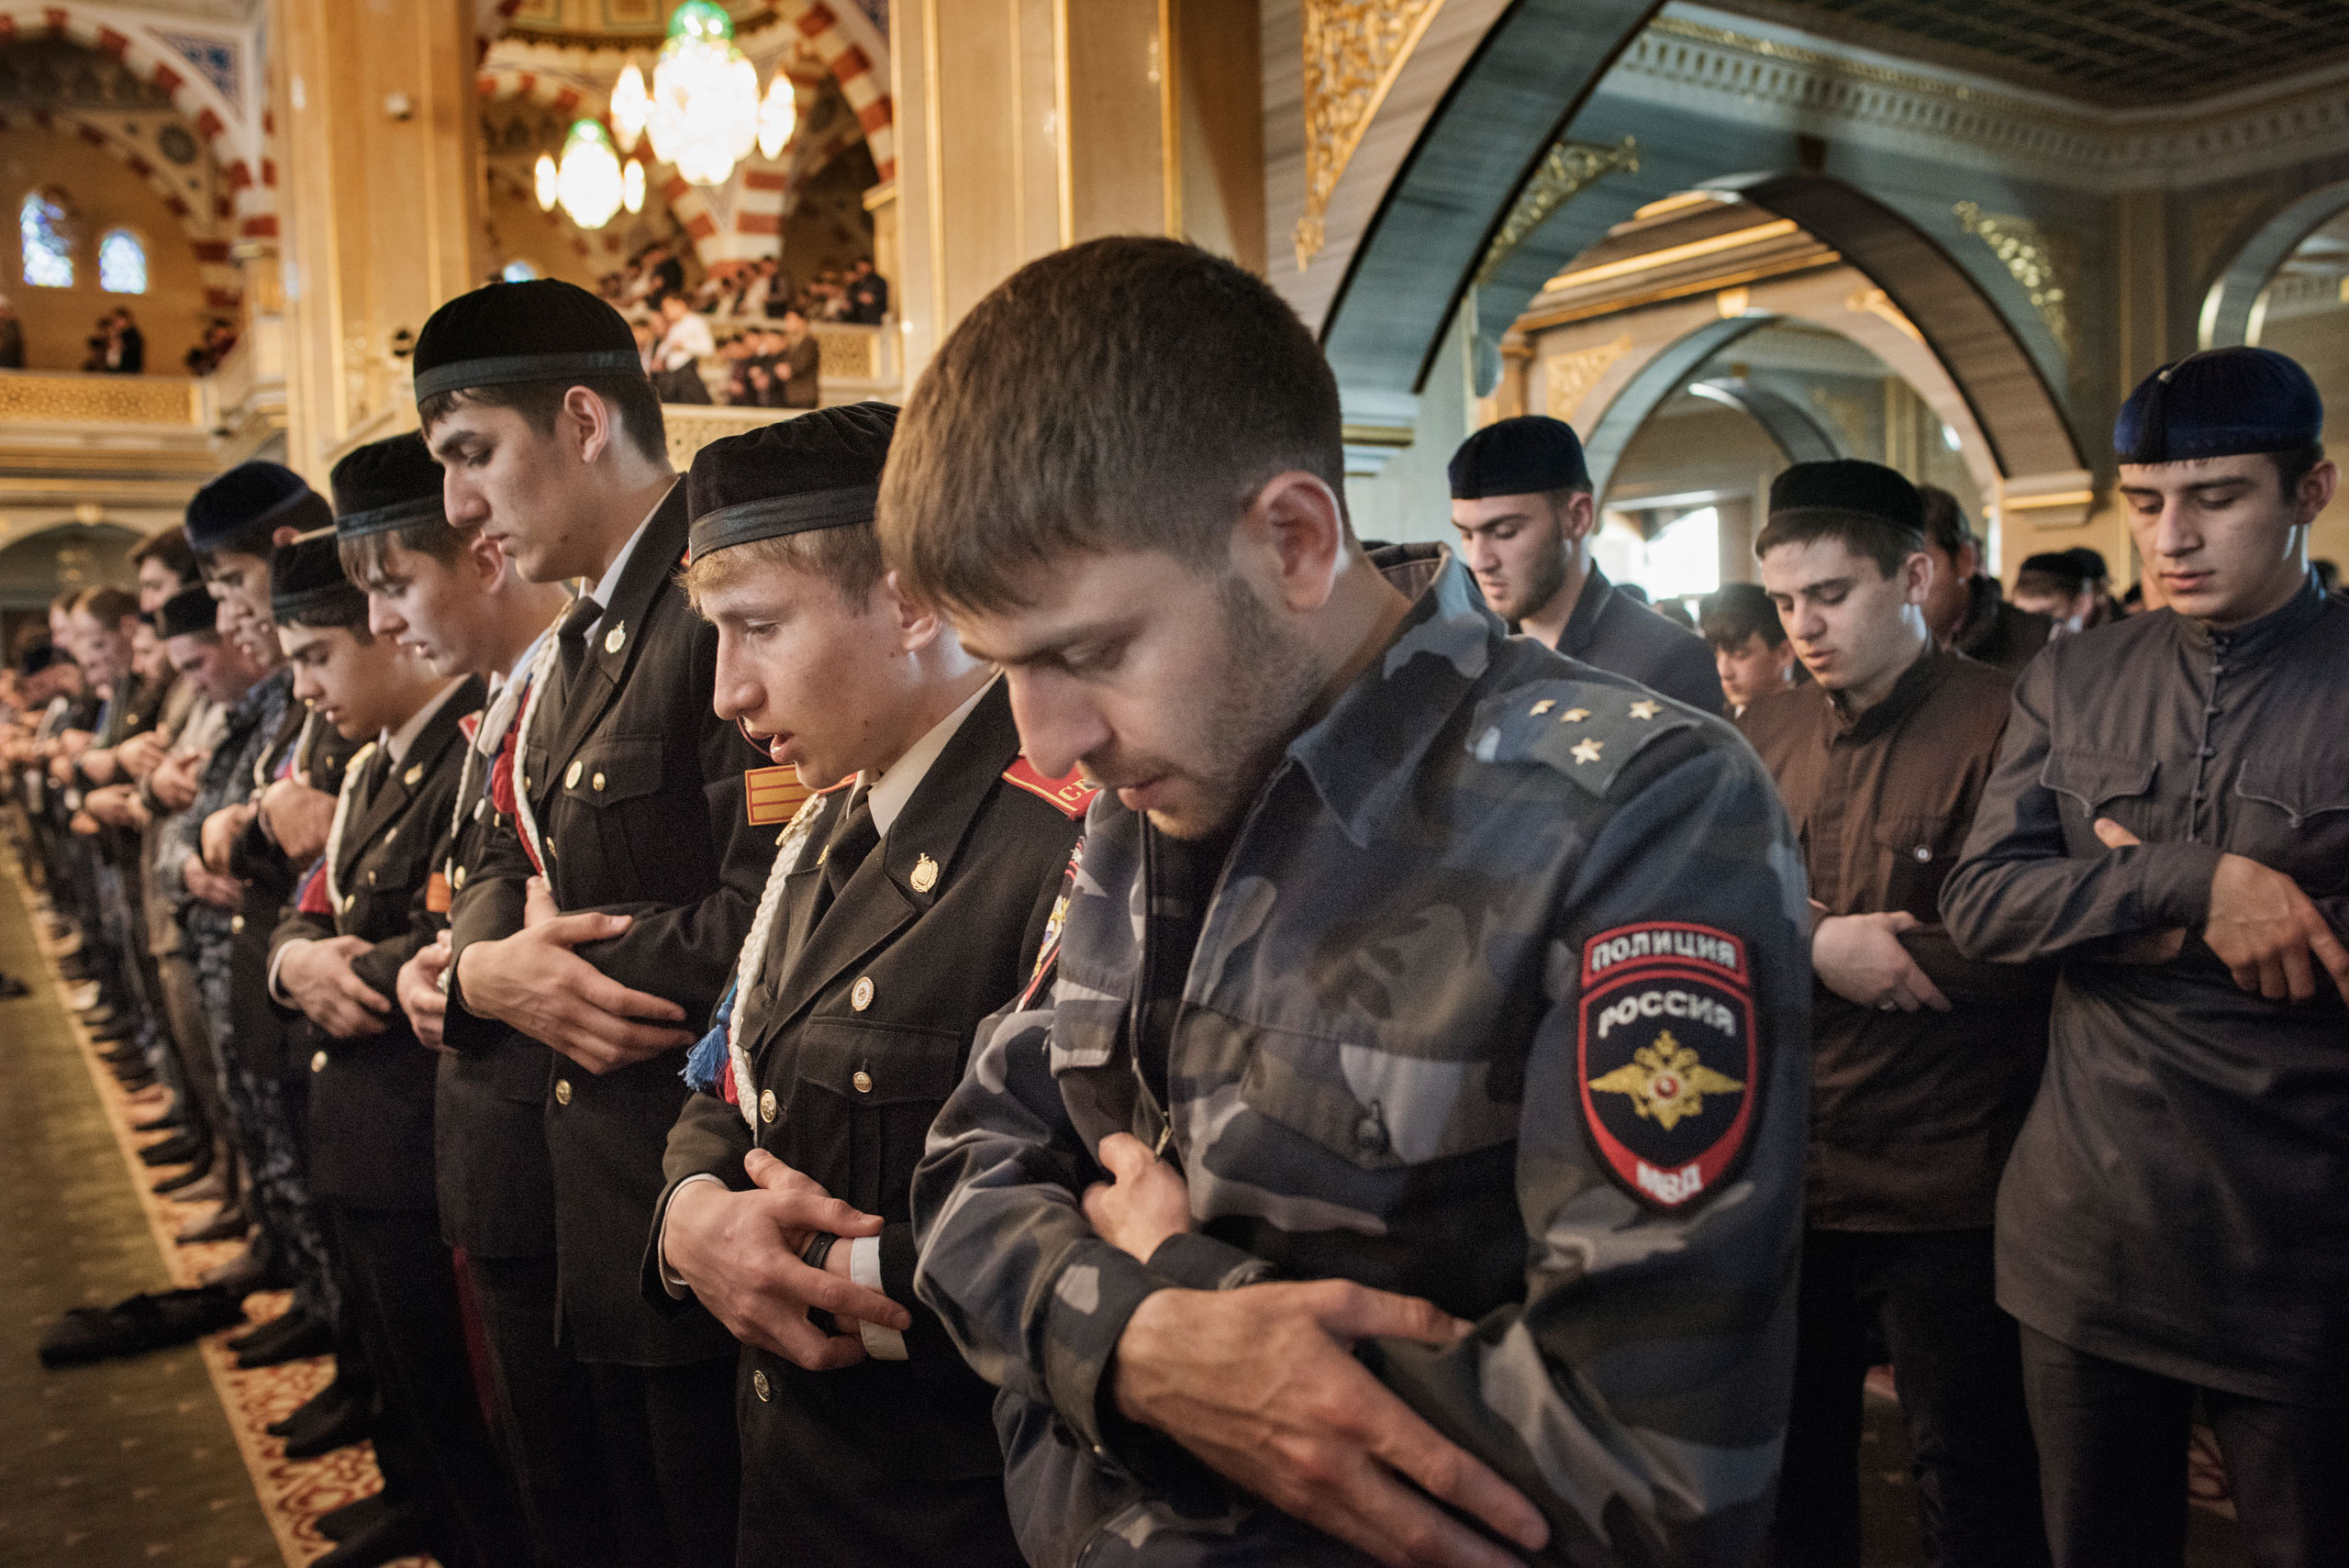 Chechen police officers and students of the prestigious Suvorov Police Academy in Chechnya attend Friday prayers at the central mosque in the regional capital of Grozny, April  2015.